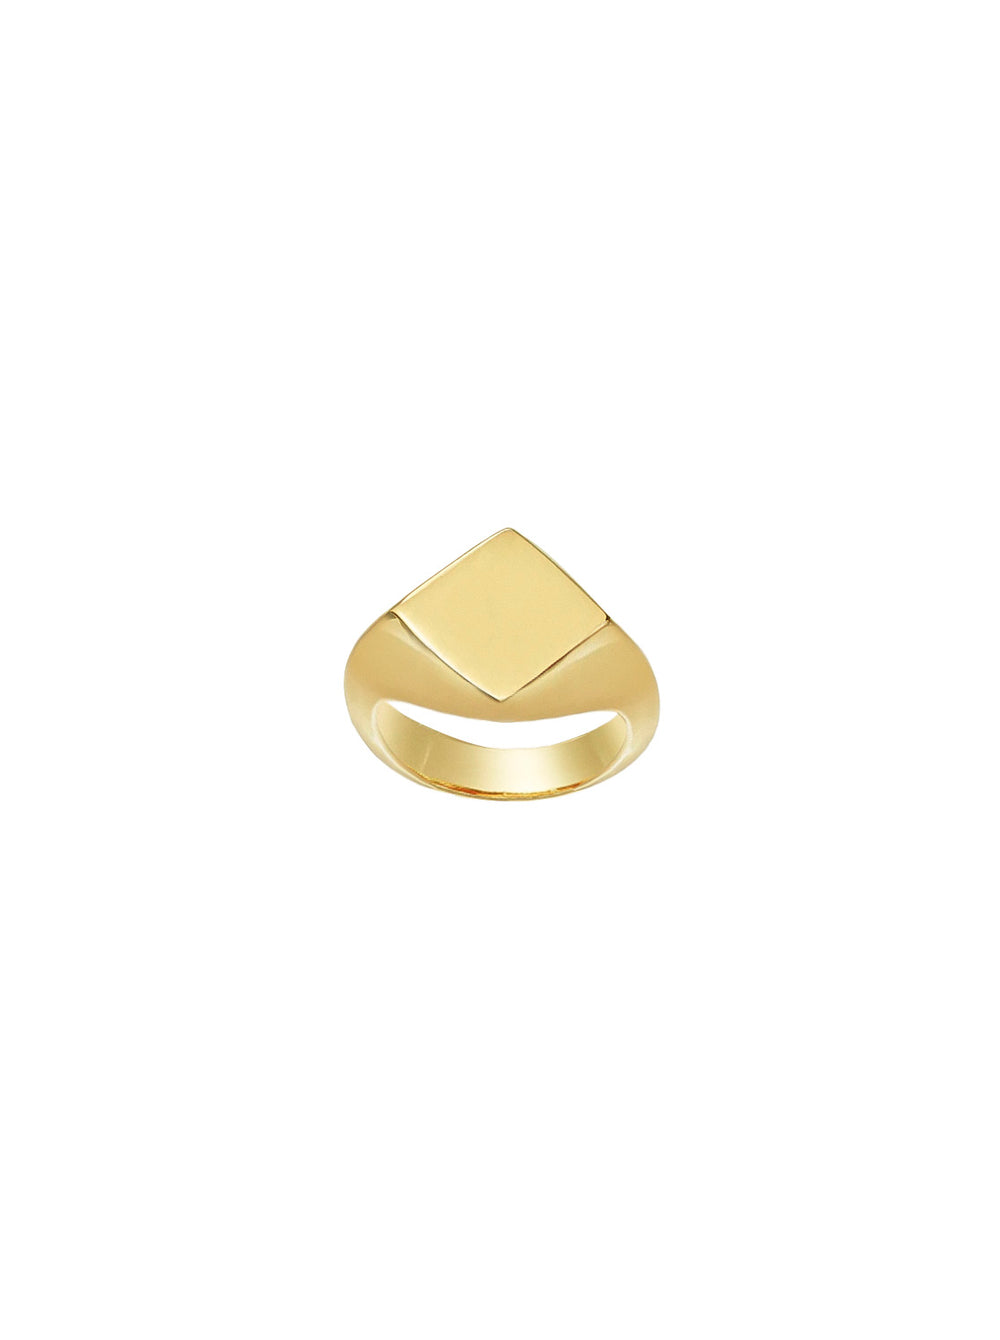 THE RHOMBUS SIGNET RING